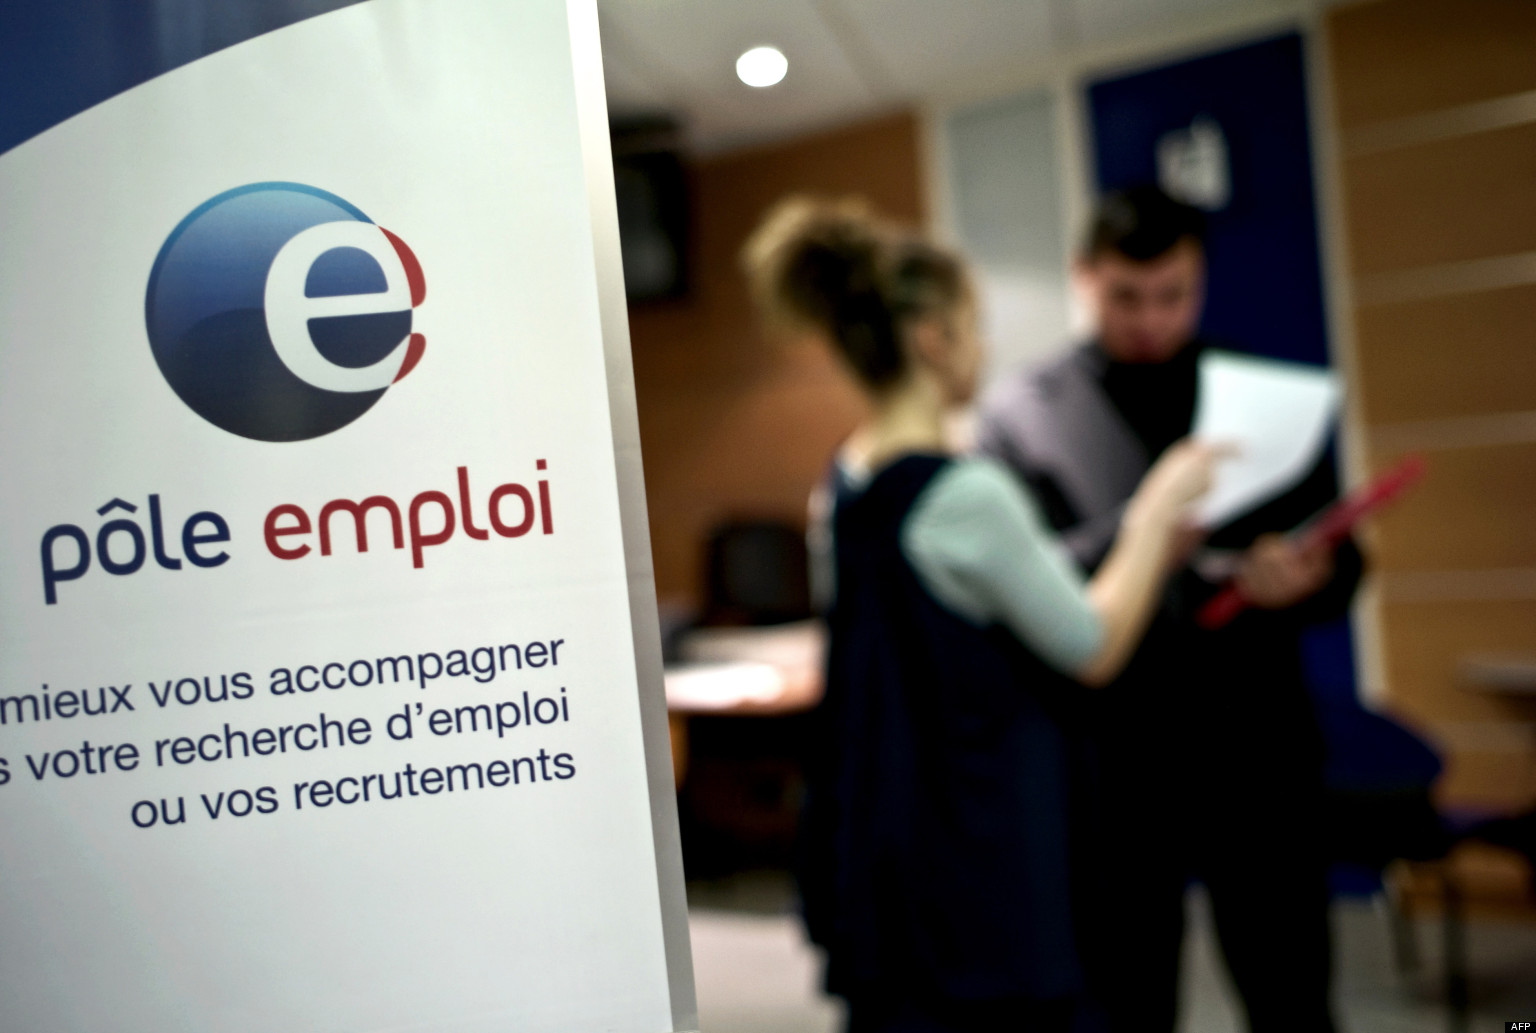 Au pole emploi … AFP PHOTO / JEFF PACHOUD